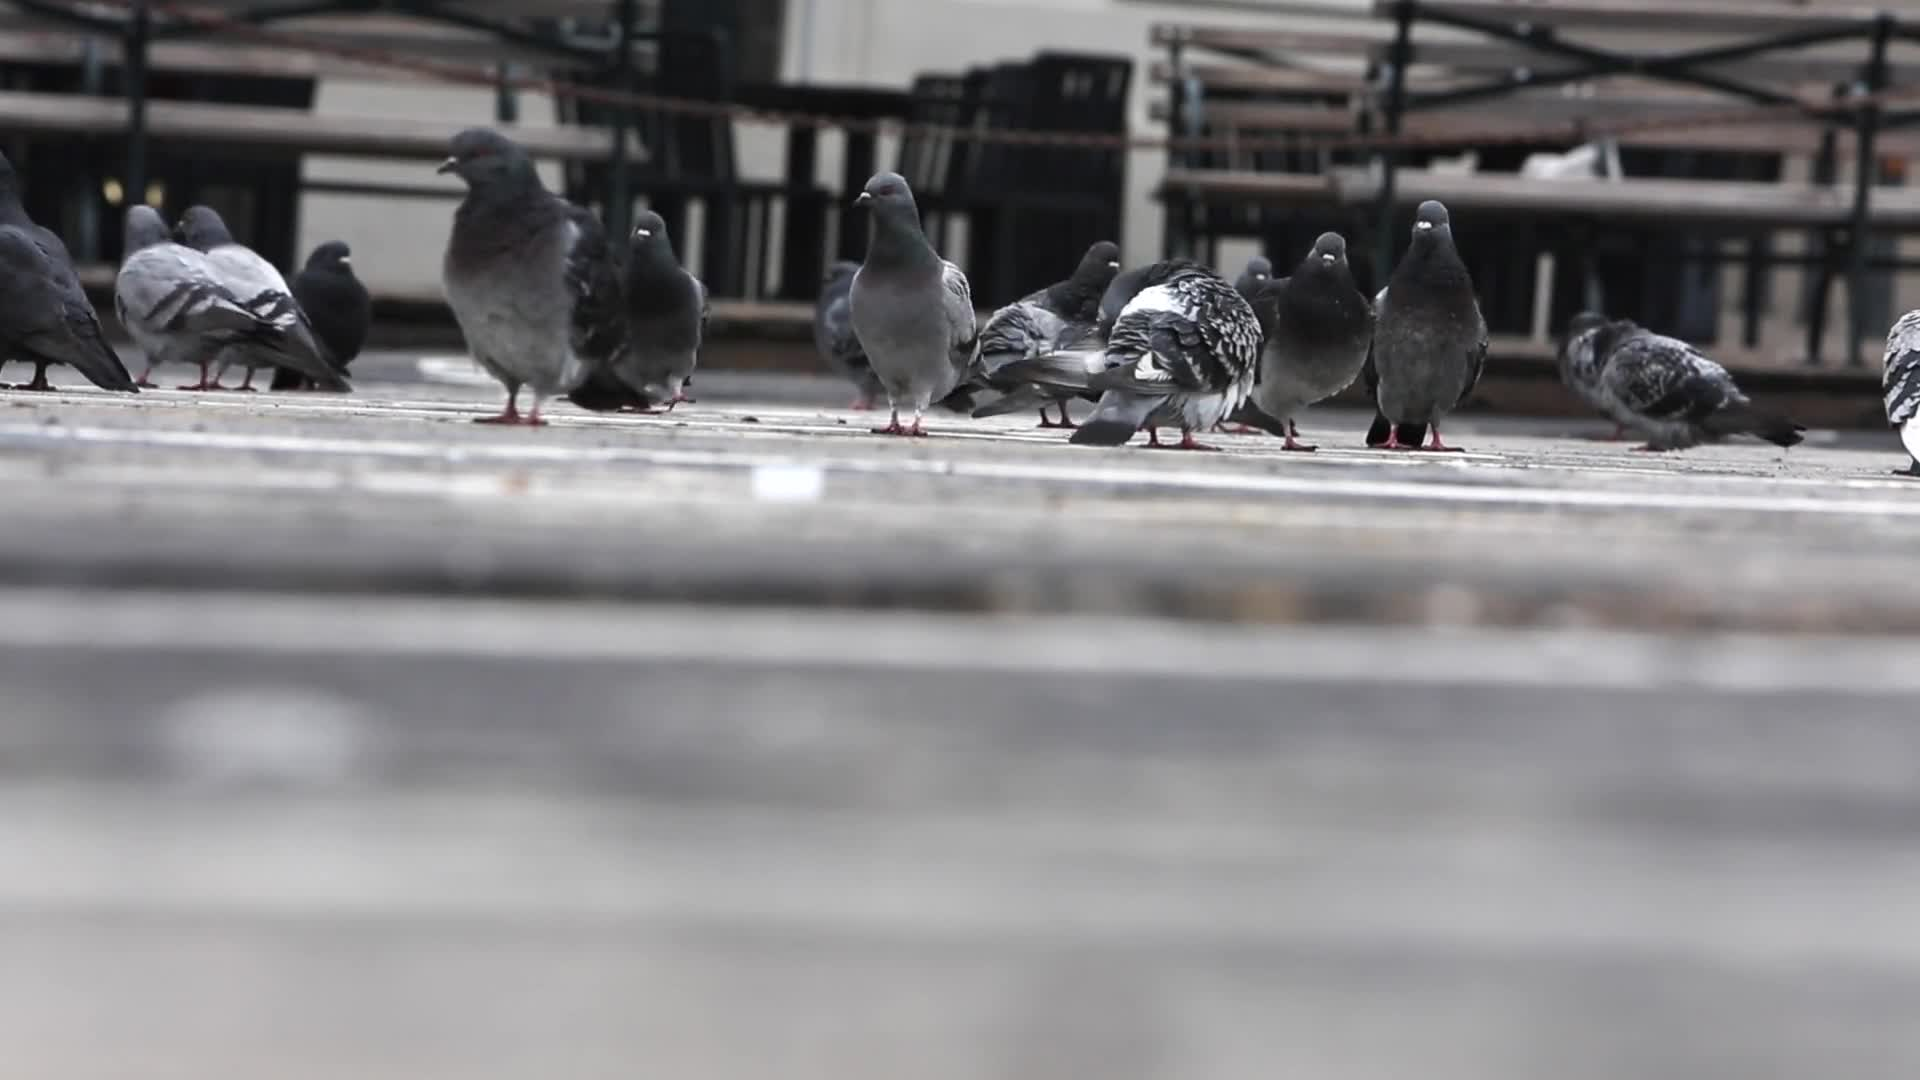 Video of pigeons eating